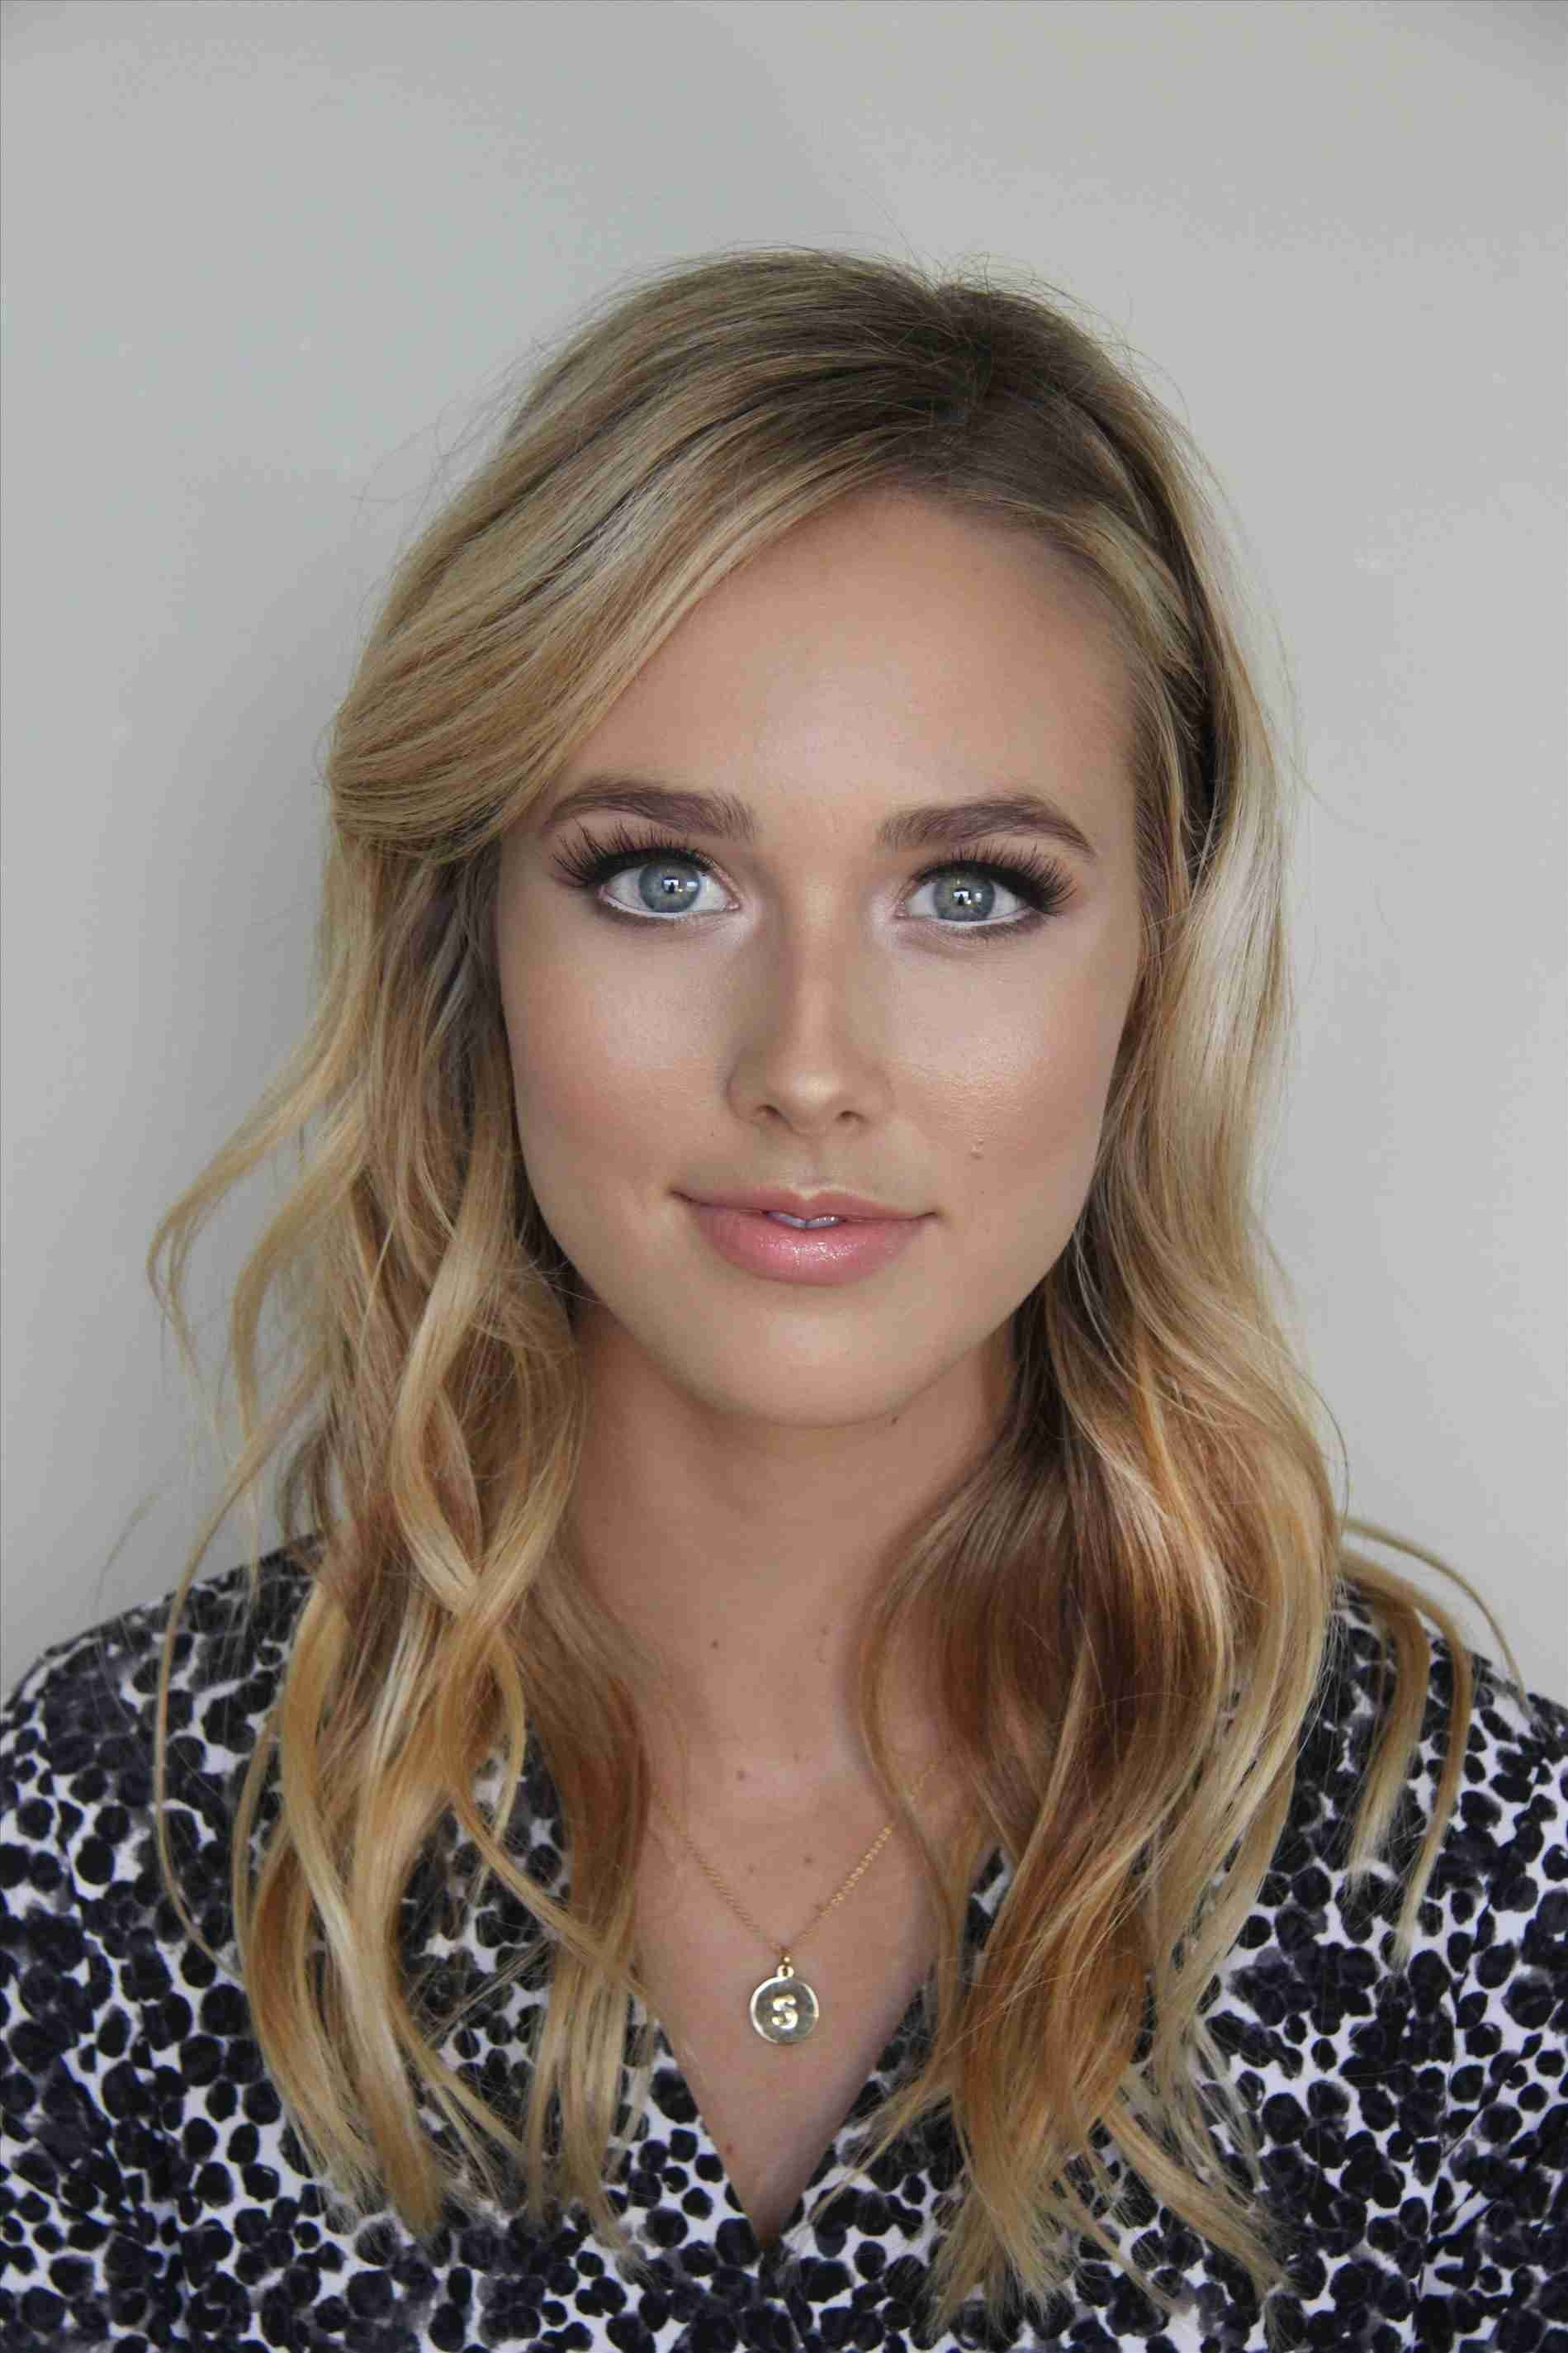 makeup for blonde hair hazel eyes fair skin - wavy haircut